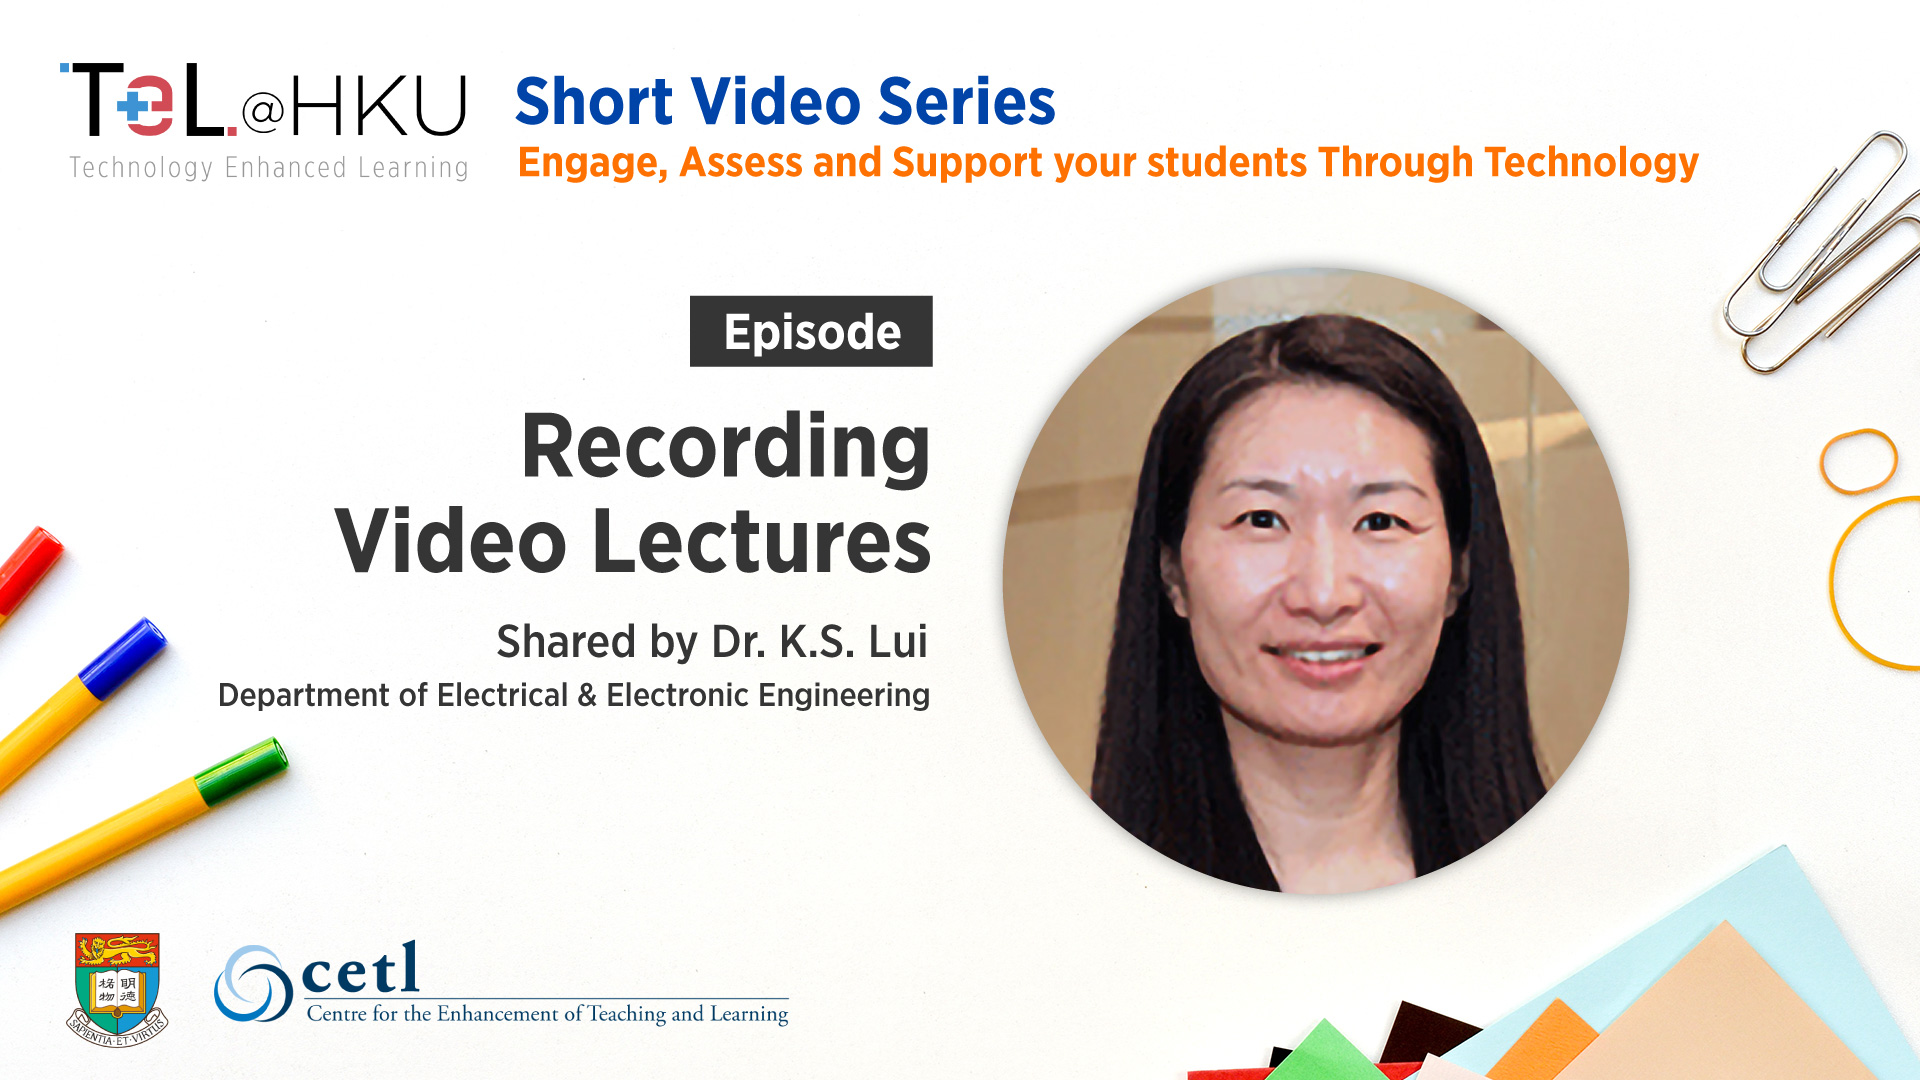 TeL@HKU Short Video Series – Recording Video Lectures shared by Dr. K.S. Lui